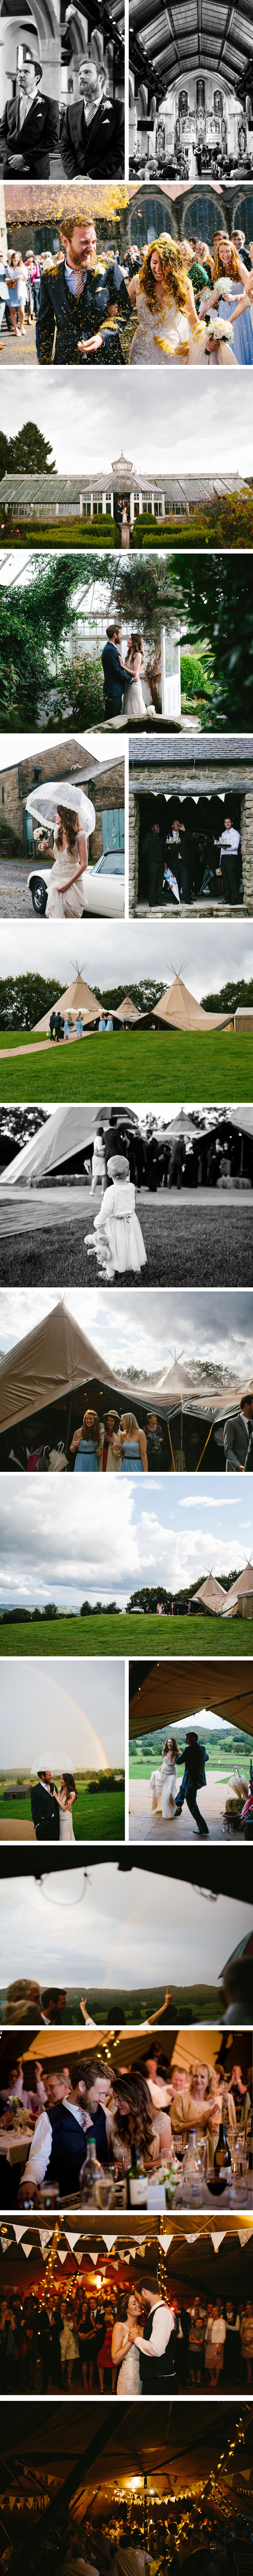 Joelle & Tom PapaKata Teepee Wedding Braisty Estate, Summerbridge, North Yorkshire